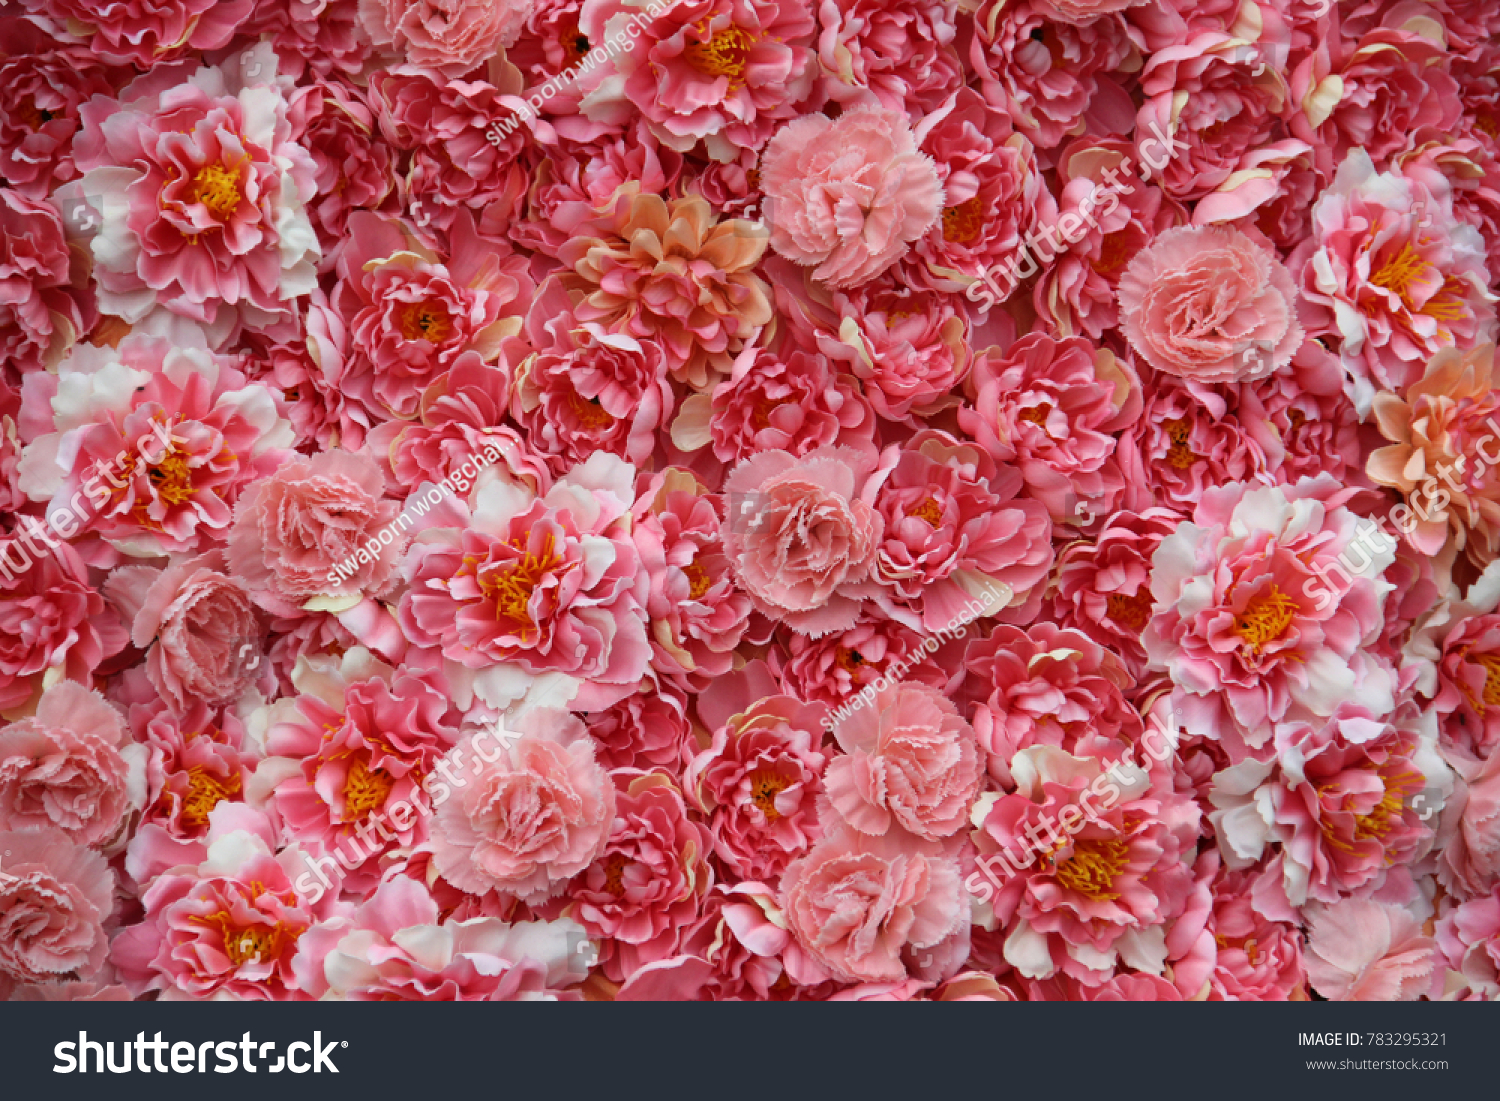 Pink Flowers Aesthetic Background Stock Photo Edit Now 783295321